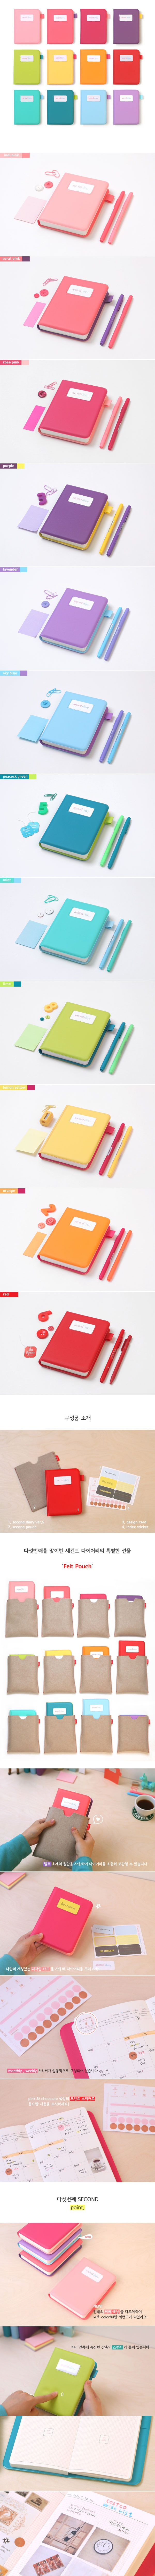 17 best ideas about Cool Office Supplies on Pinterest  Cool desk